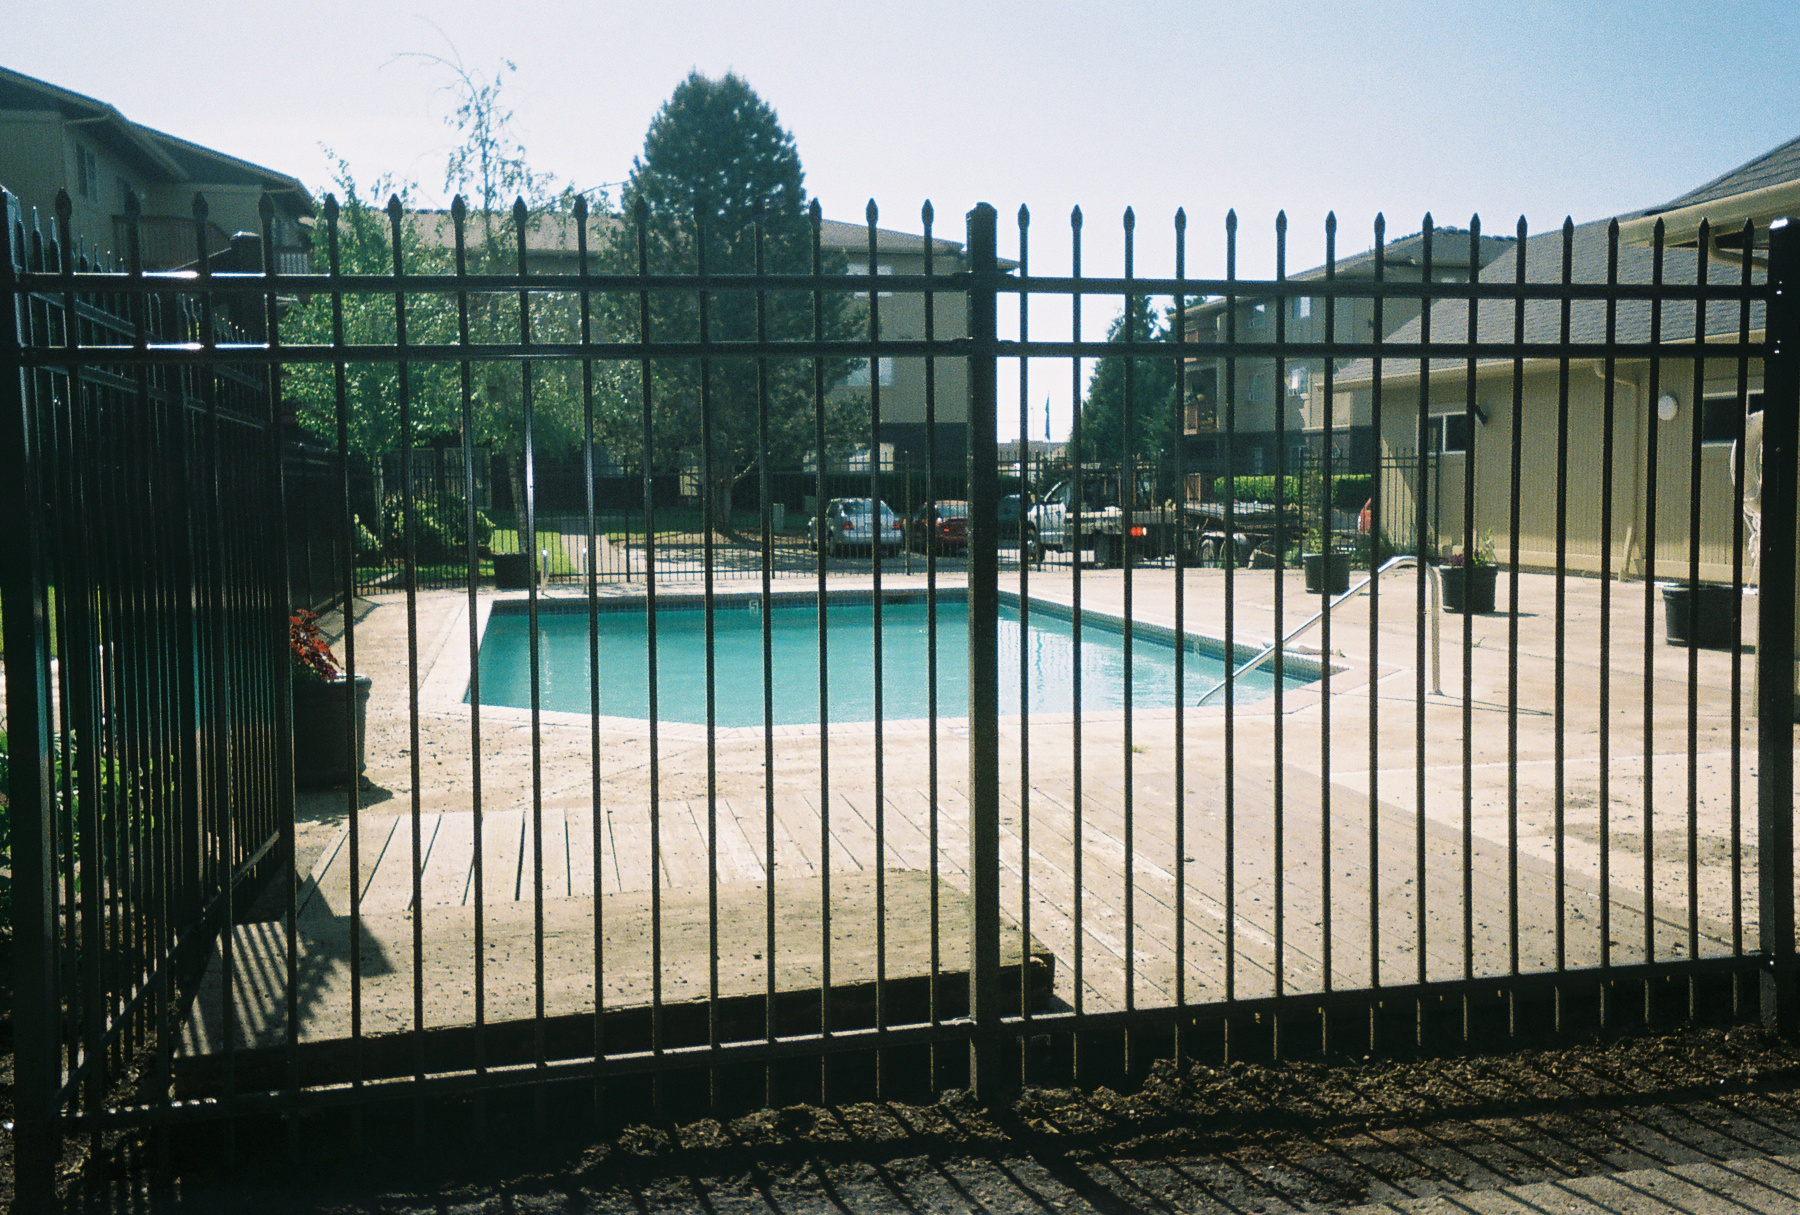 Ornamental Fence providing beauty and security and safety. Contact Vancouver Washington's Best Fence Builders. Providing the best in all your fence needs for over 35 years. Call: 360-254-2299 today